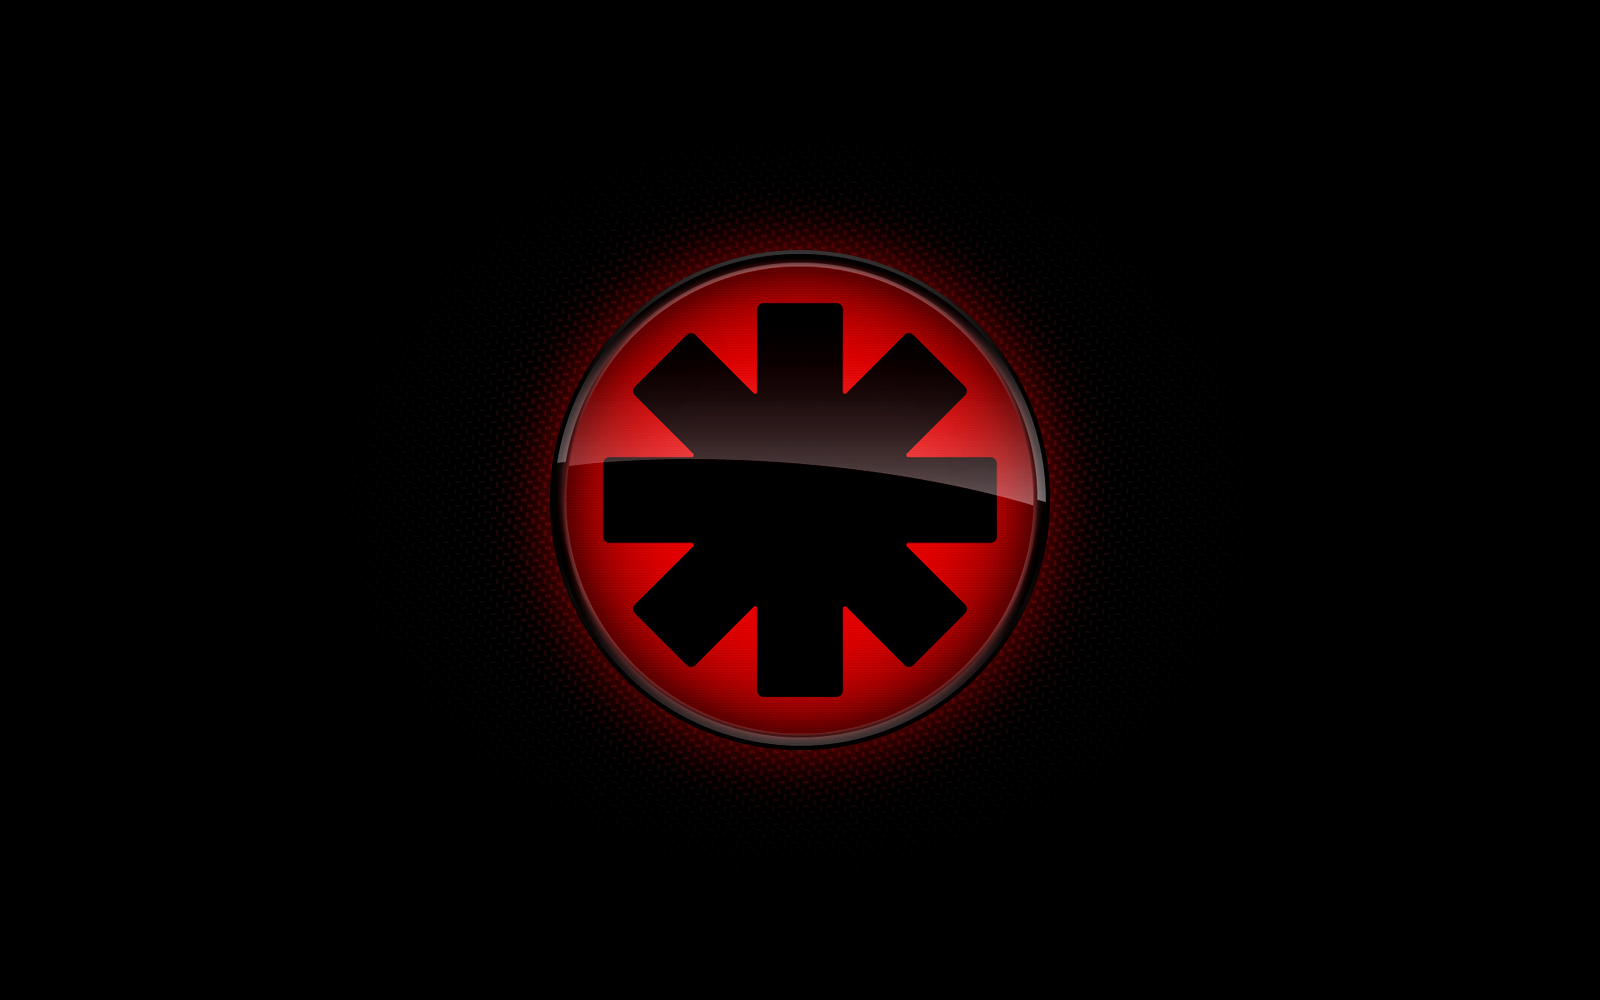 The Cars Band Cover Wallpaper Red Hot Chili Peppers Logo Music Band Hd Wallpapers Hd